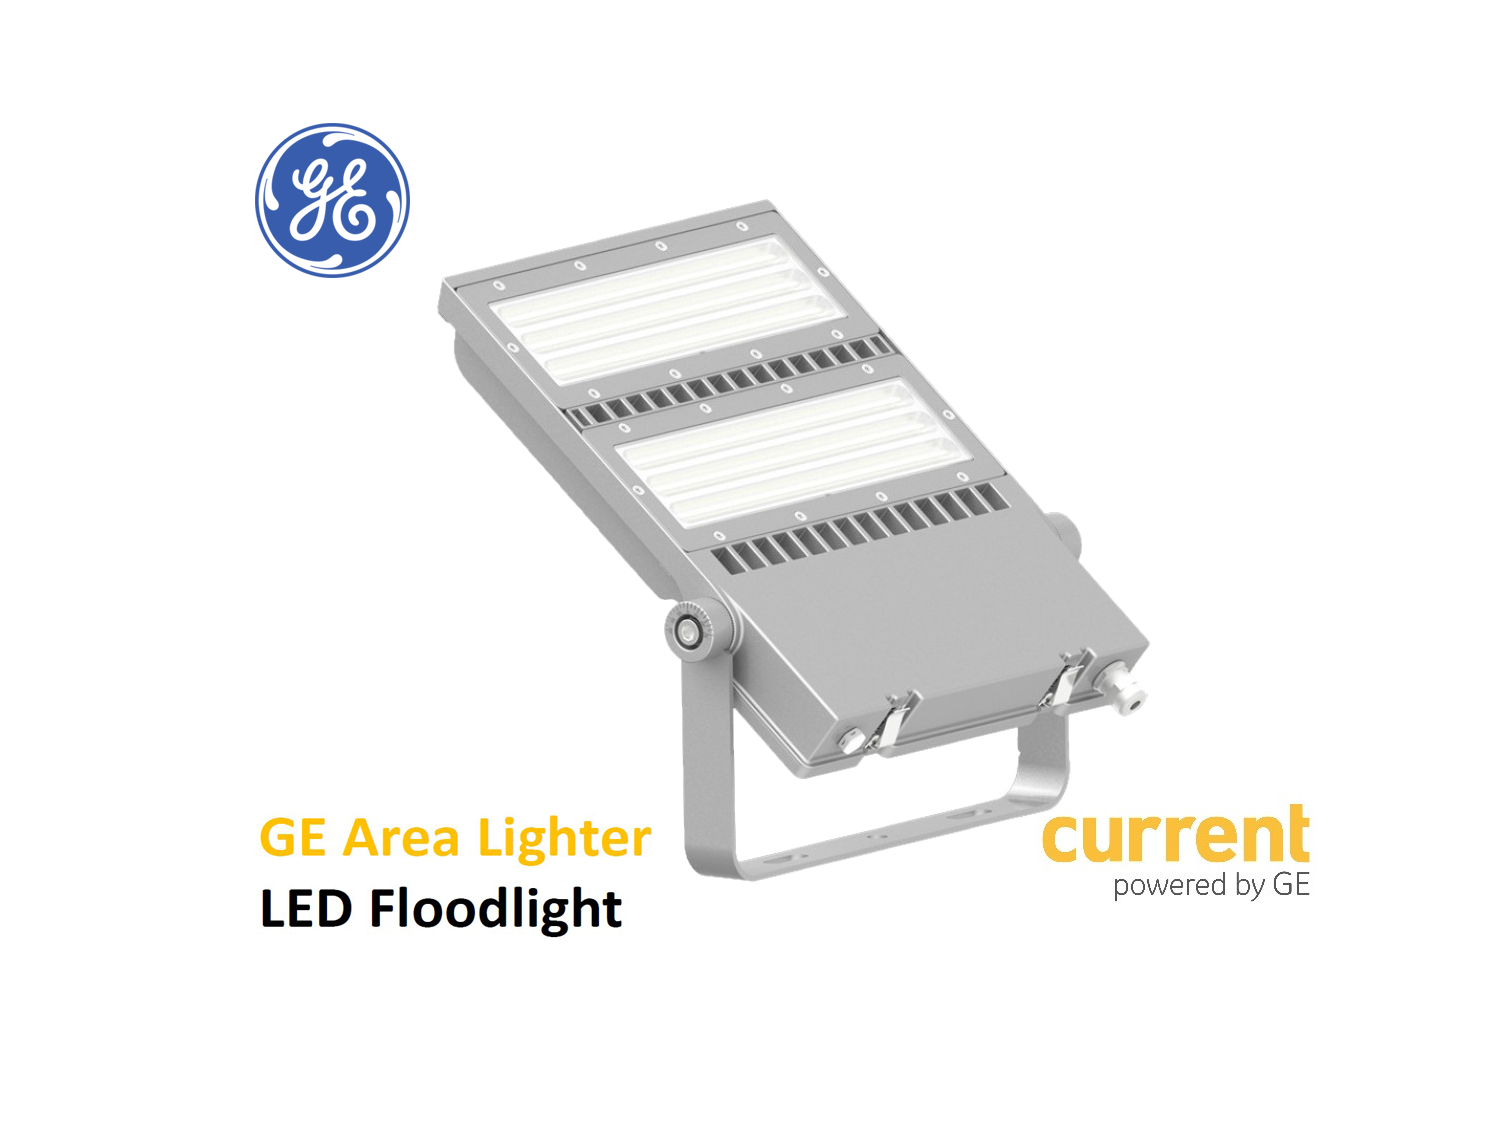 GE Area Lighter LED Floodlight